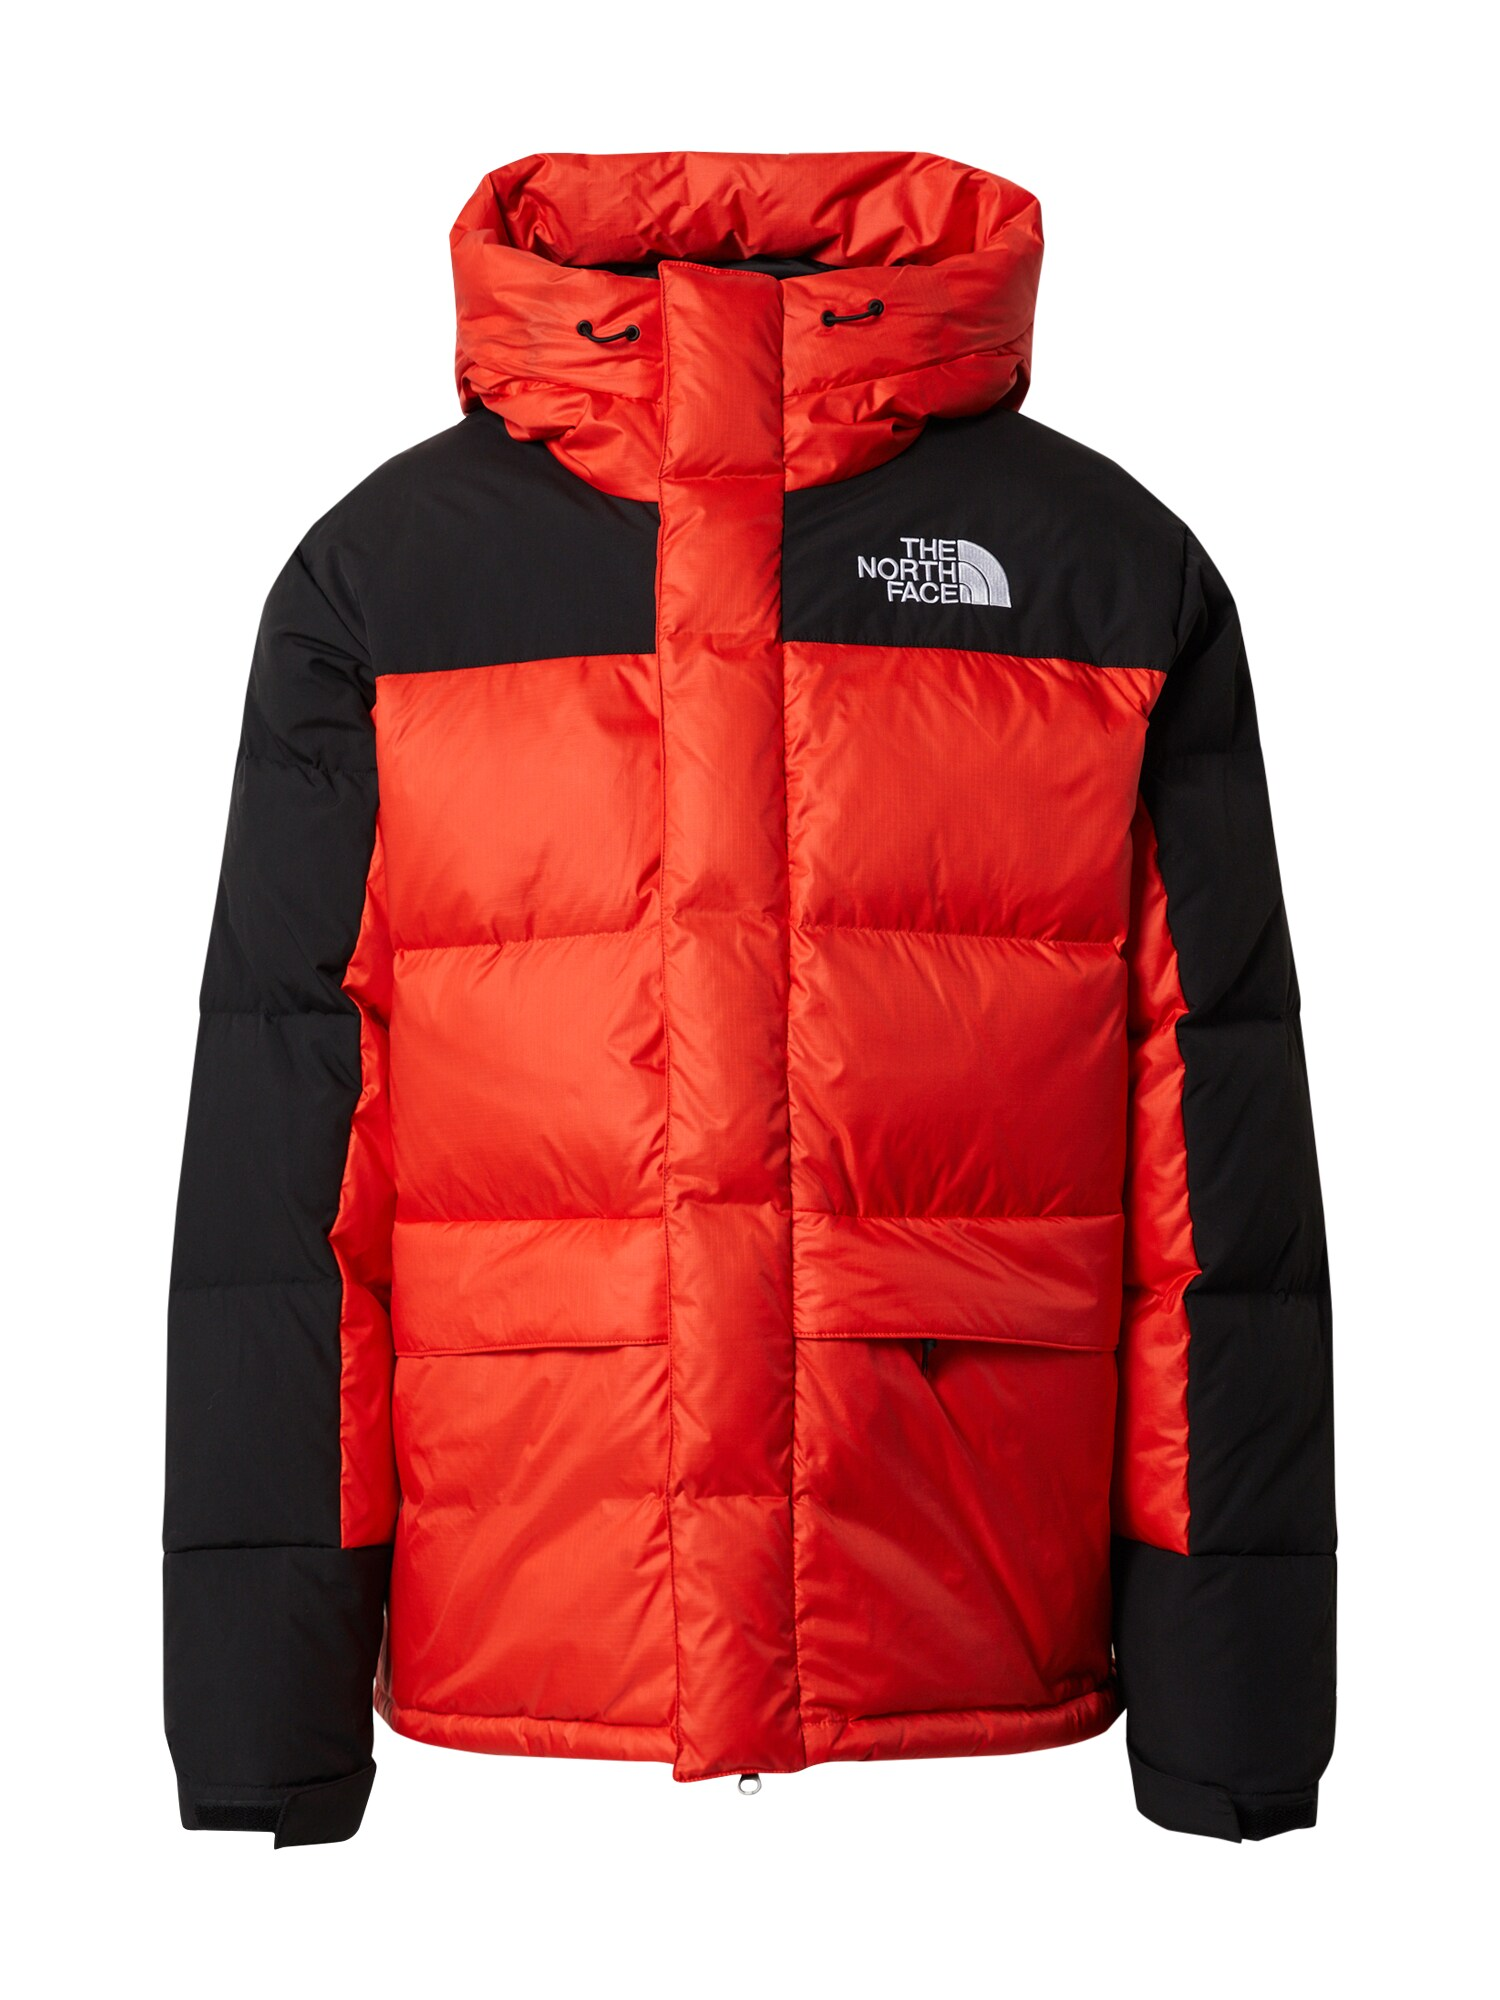 THE NORTH FACE Outdoorová bunda M HMLYN DOWN PARKA černá červená The North Face